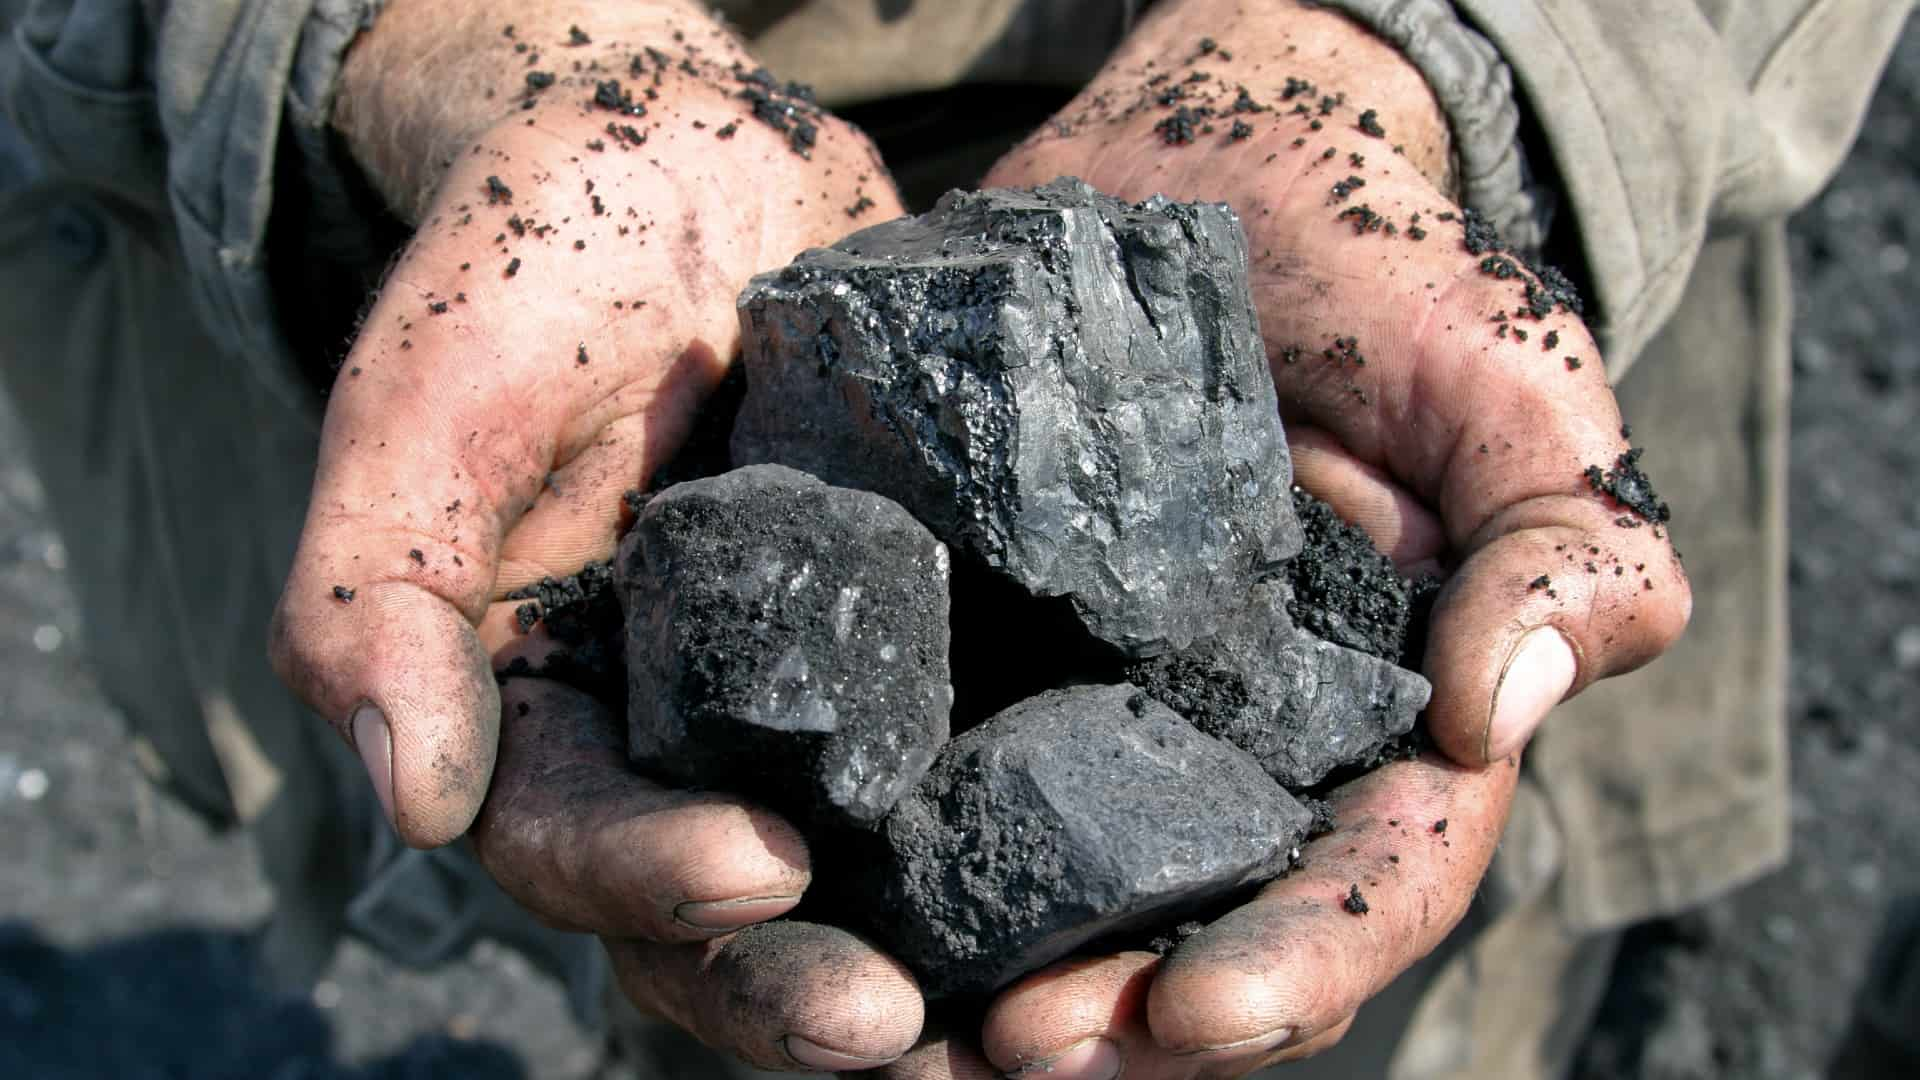 A miner holds two hands full of coal, indicating share price movement for coal and energy companies